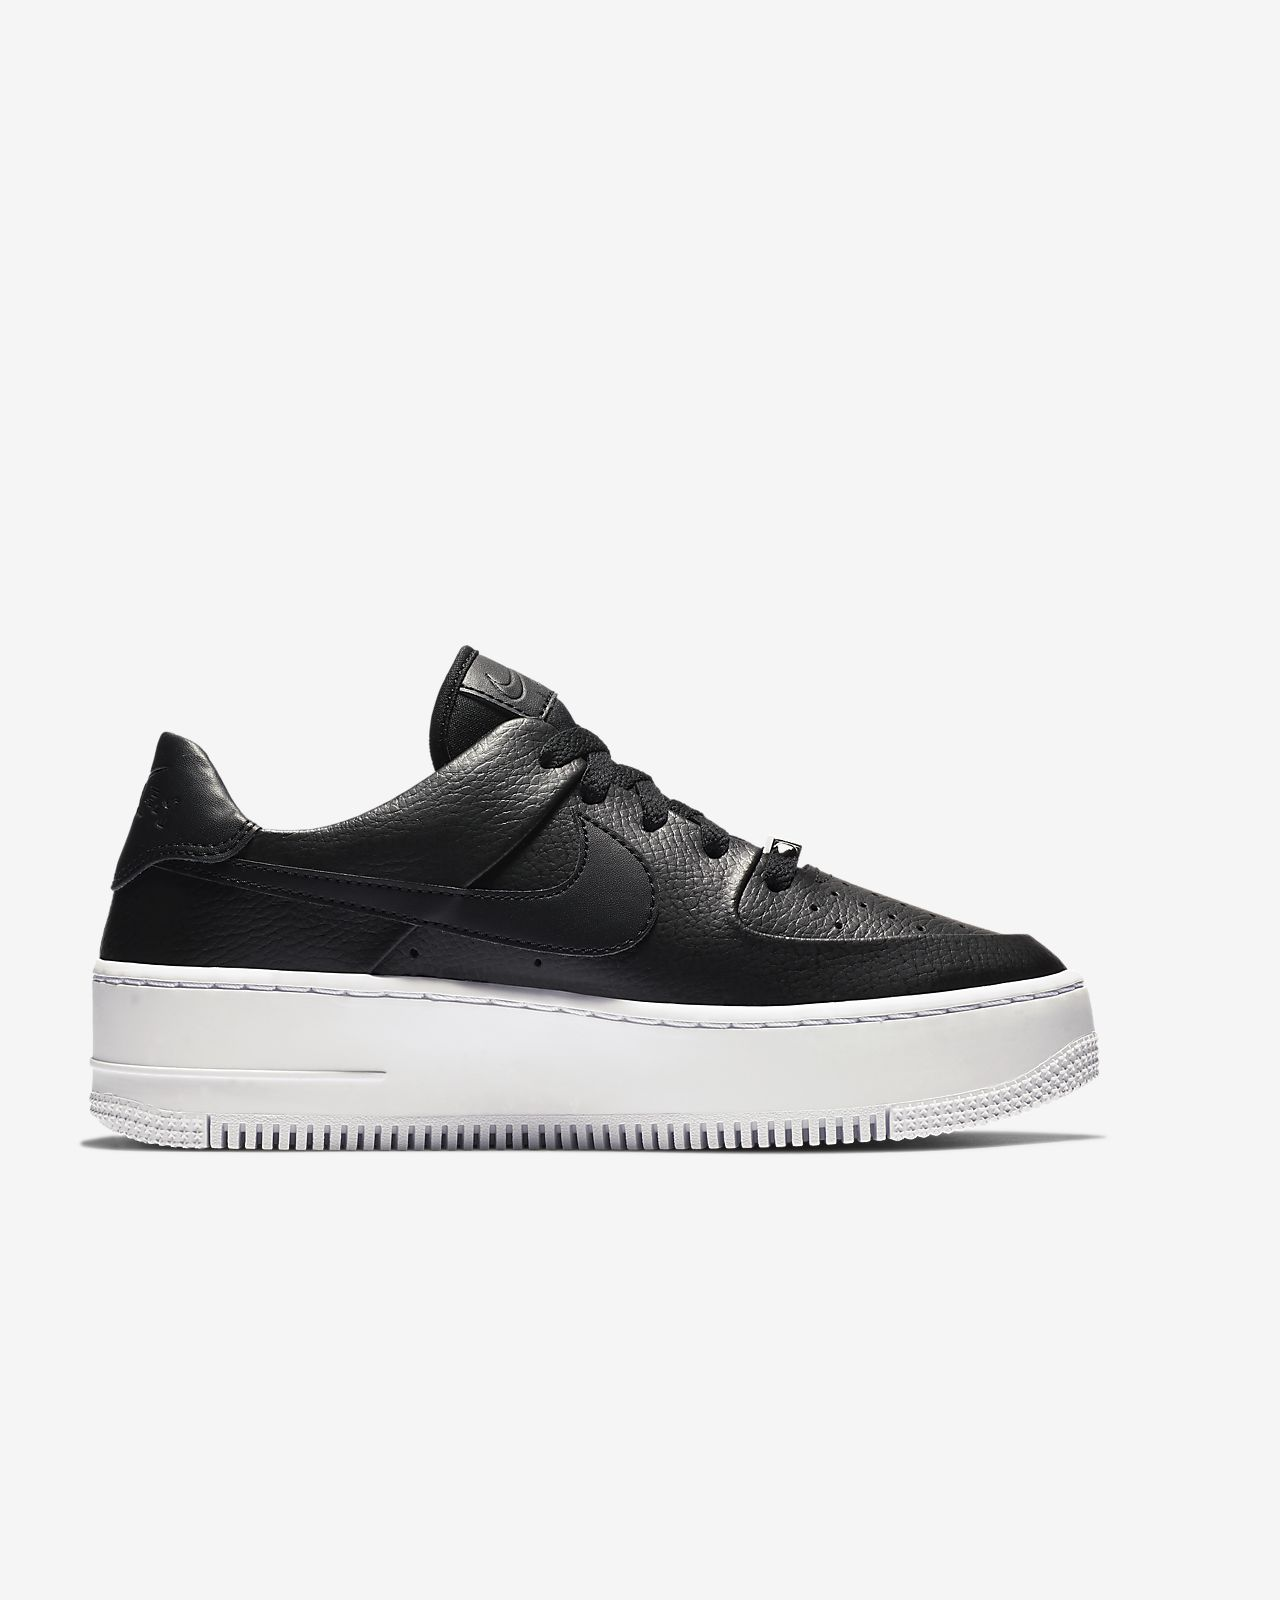 Nike Air Force 1 Low BlackWhite For Sale